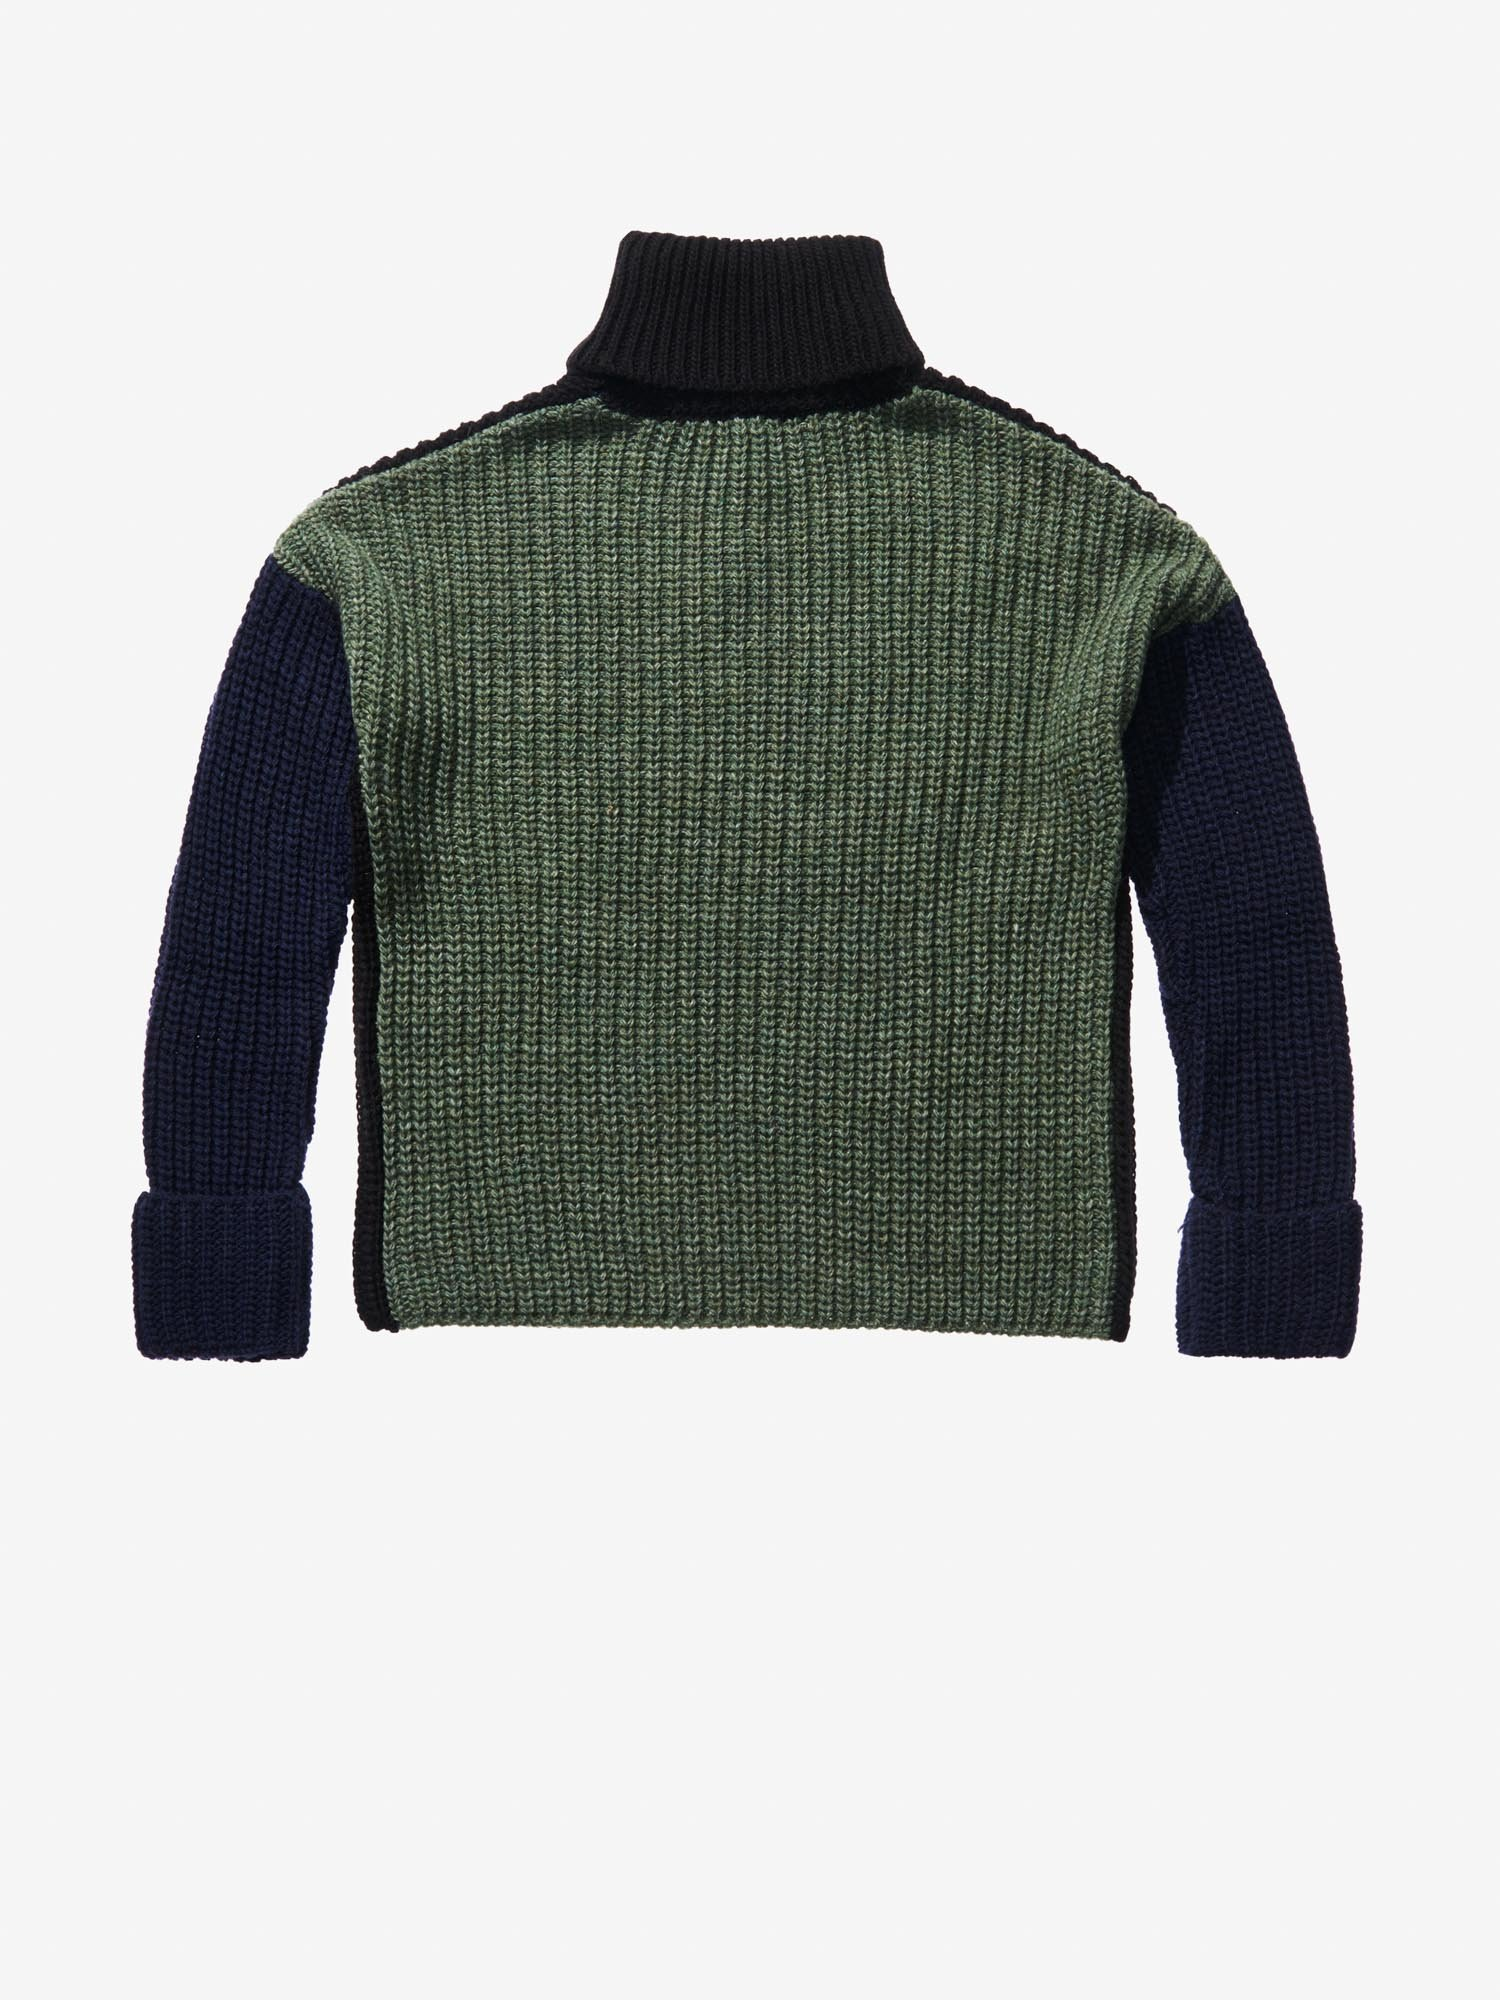 MULTICOLOUR TURTLENECK - Blauer